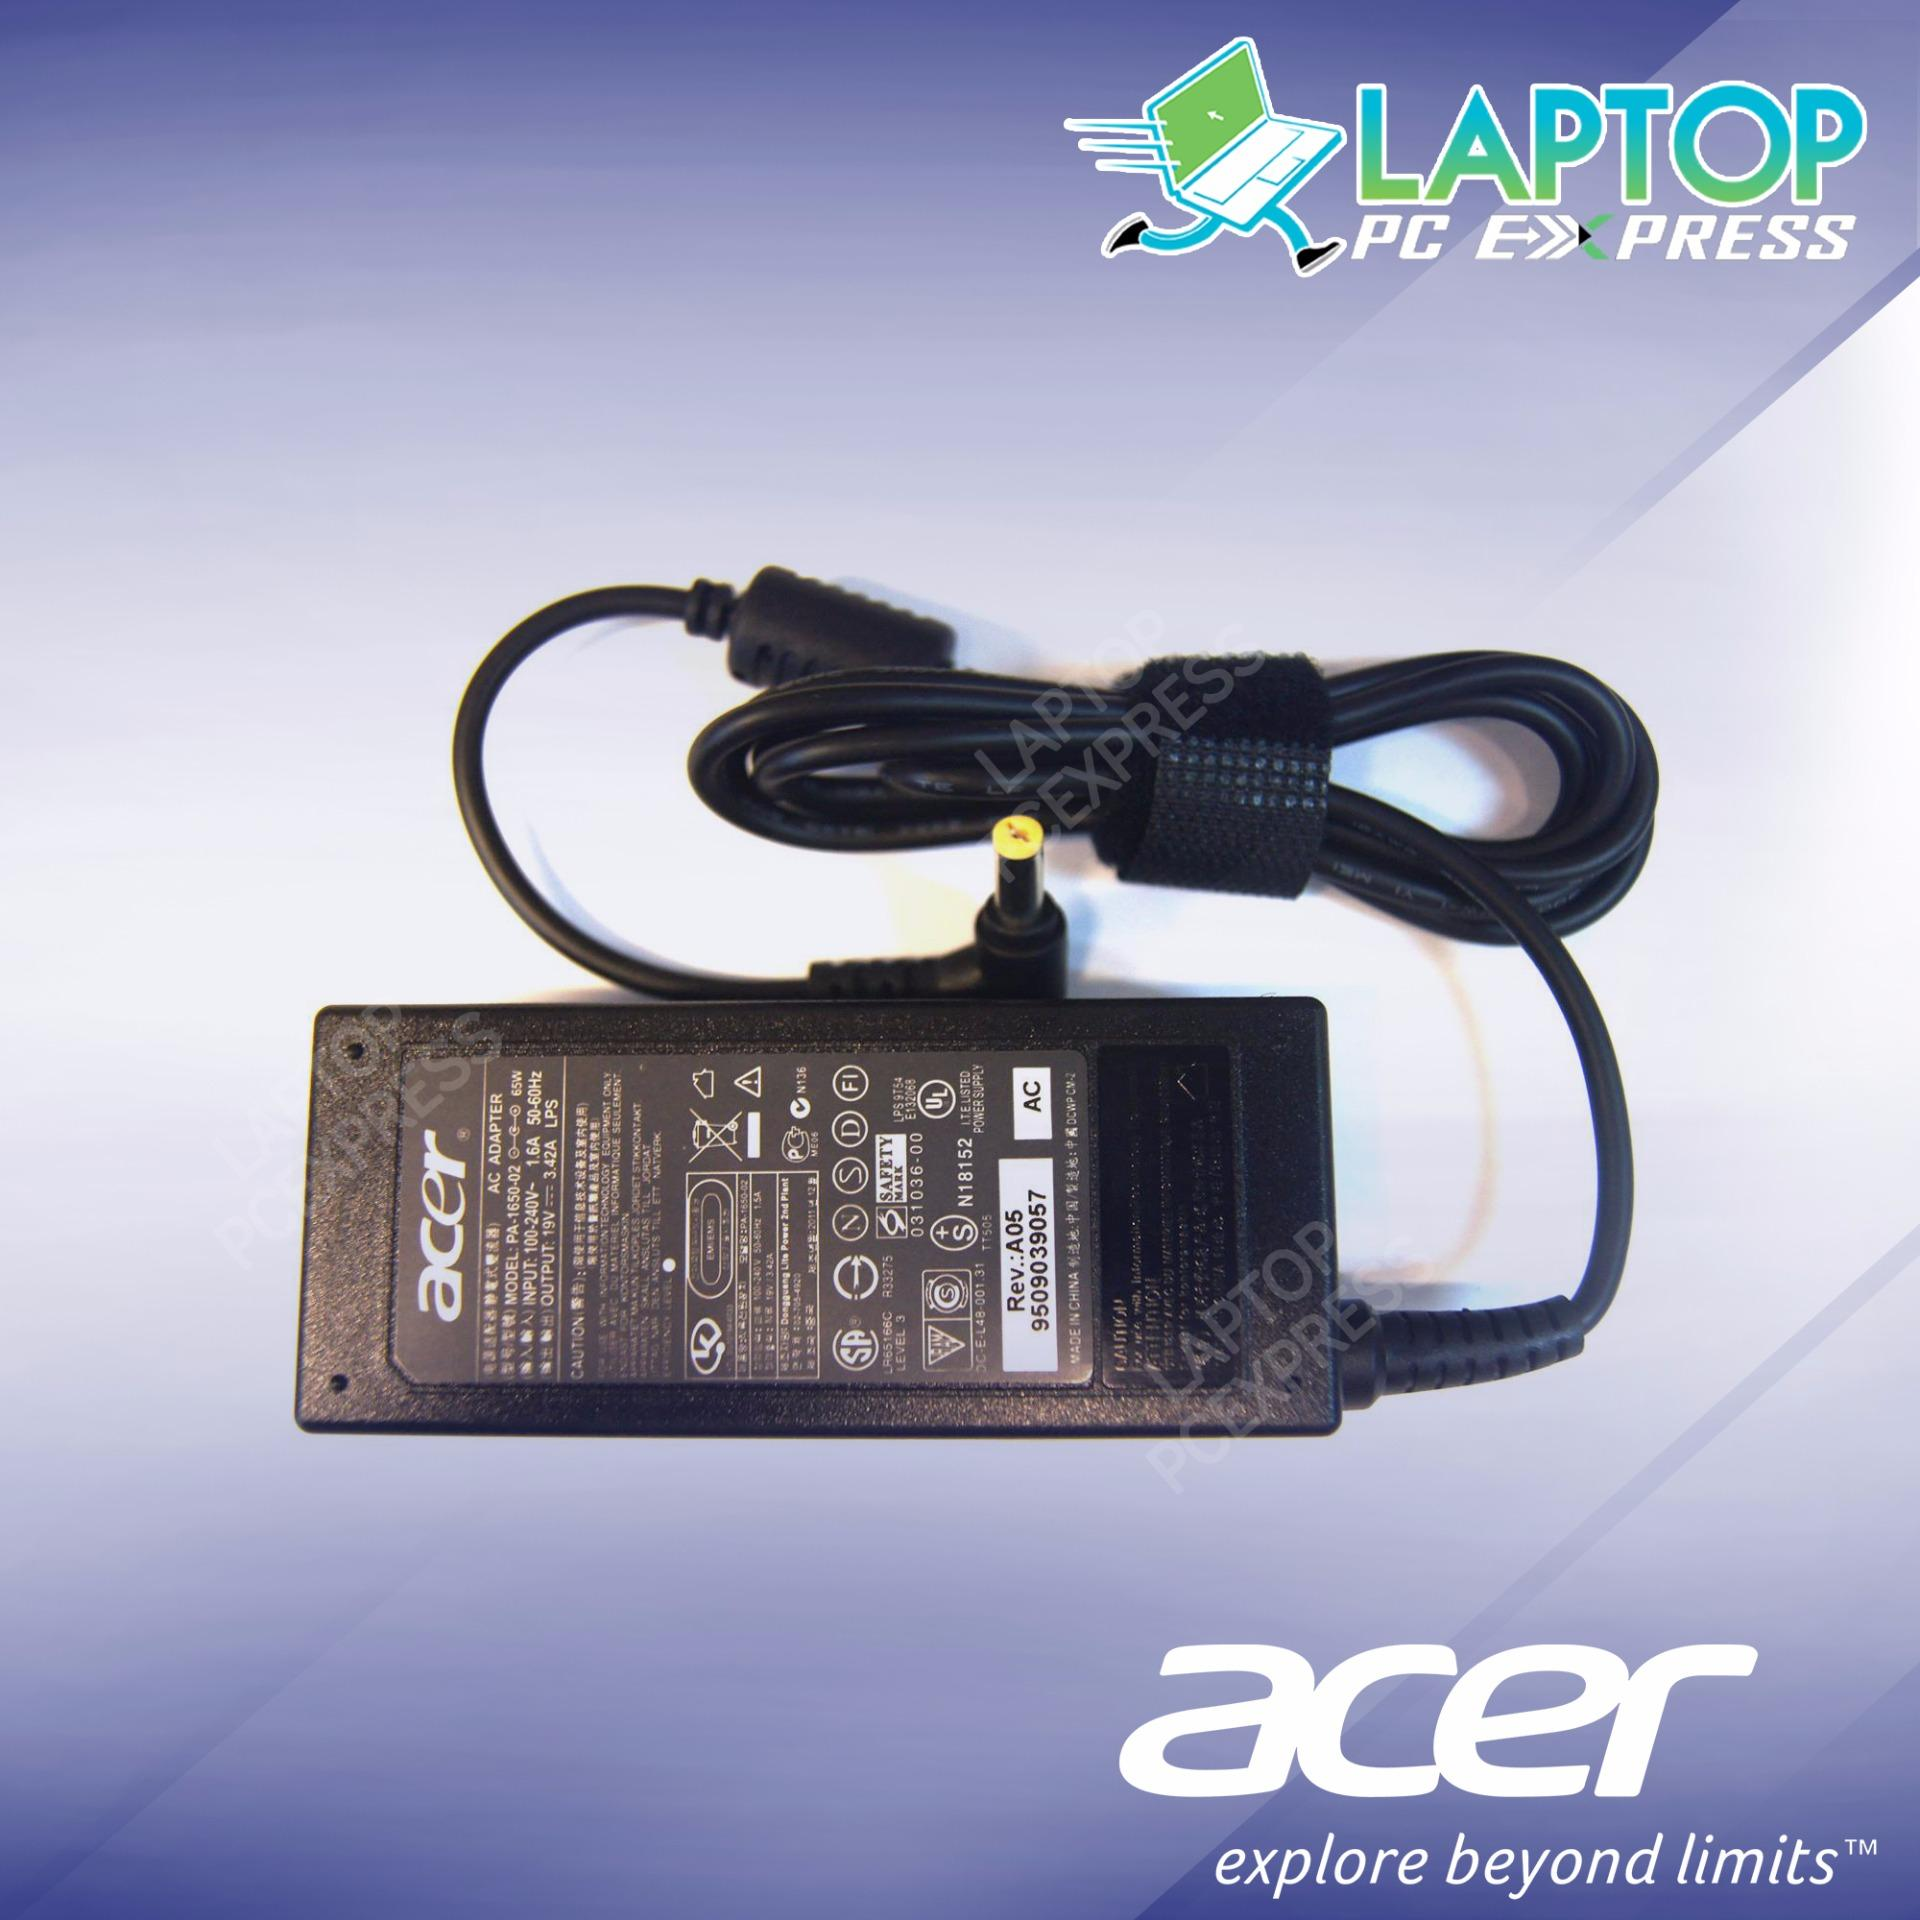 Harga Acer Aspire Es1 432 Notebook Black Termurah 2018 14 B N33502 Gb500 Gbwin 10 Philippines Laptop Charger 19v 342a 65w For E1 430e1 430g